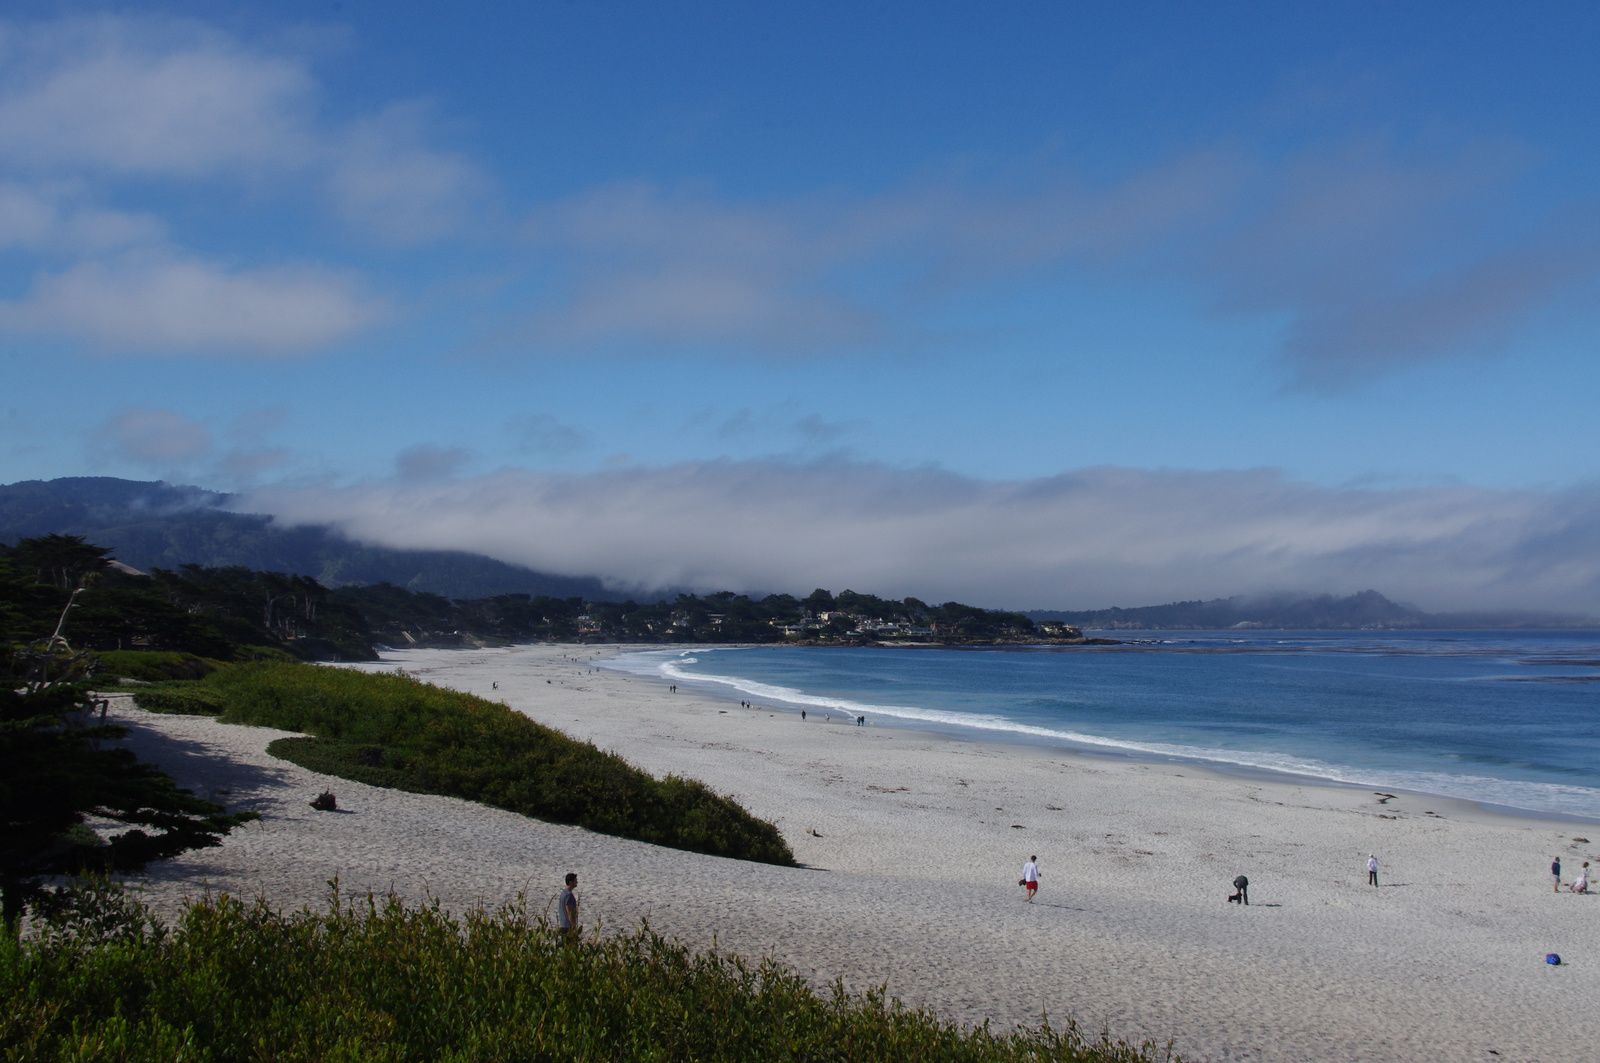 USA Road Trip - Jour 06/25 - Carmel By The Sea / Pismo Beach